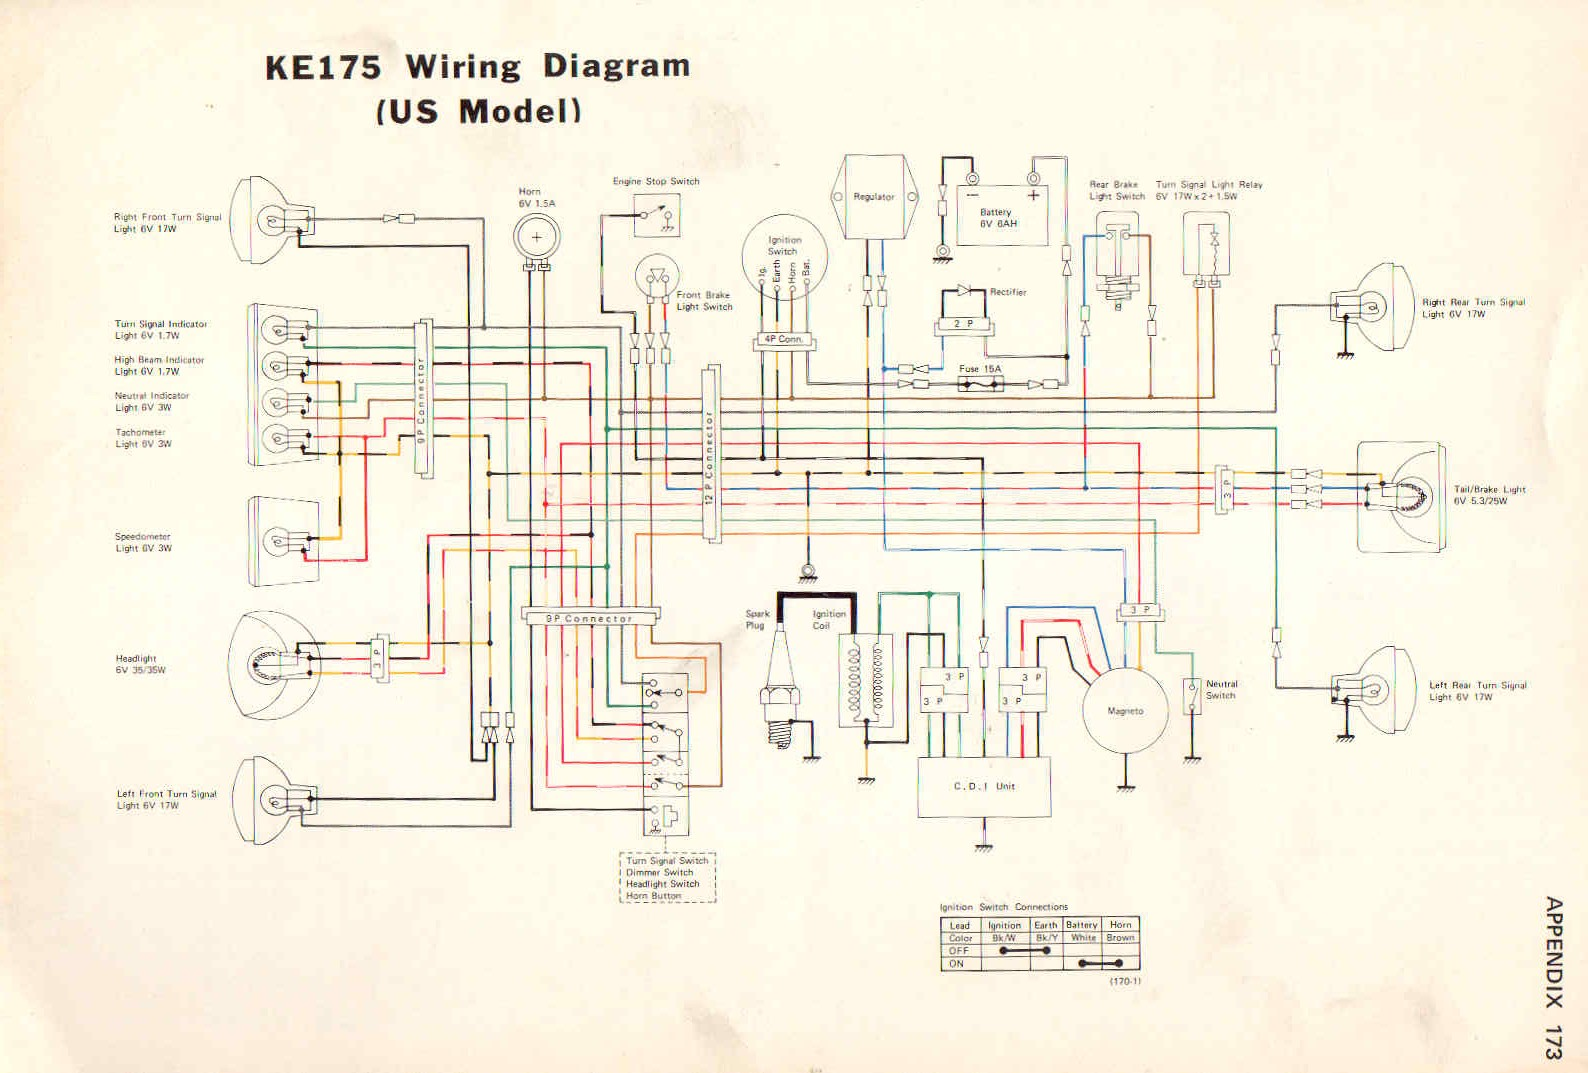 wiring diagram for motorcycle head unit kawasaki ke175 service manual